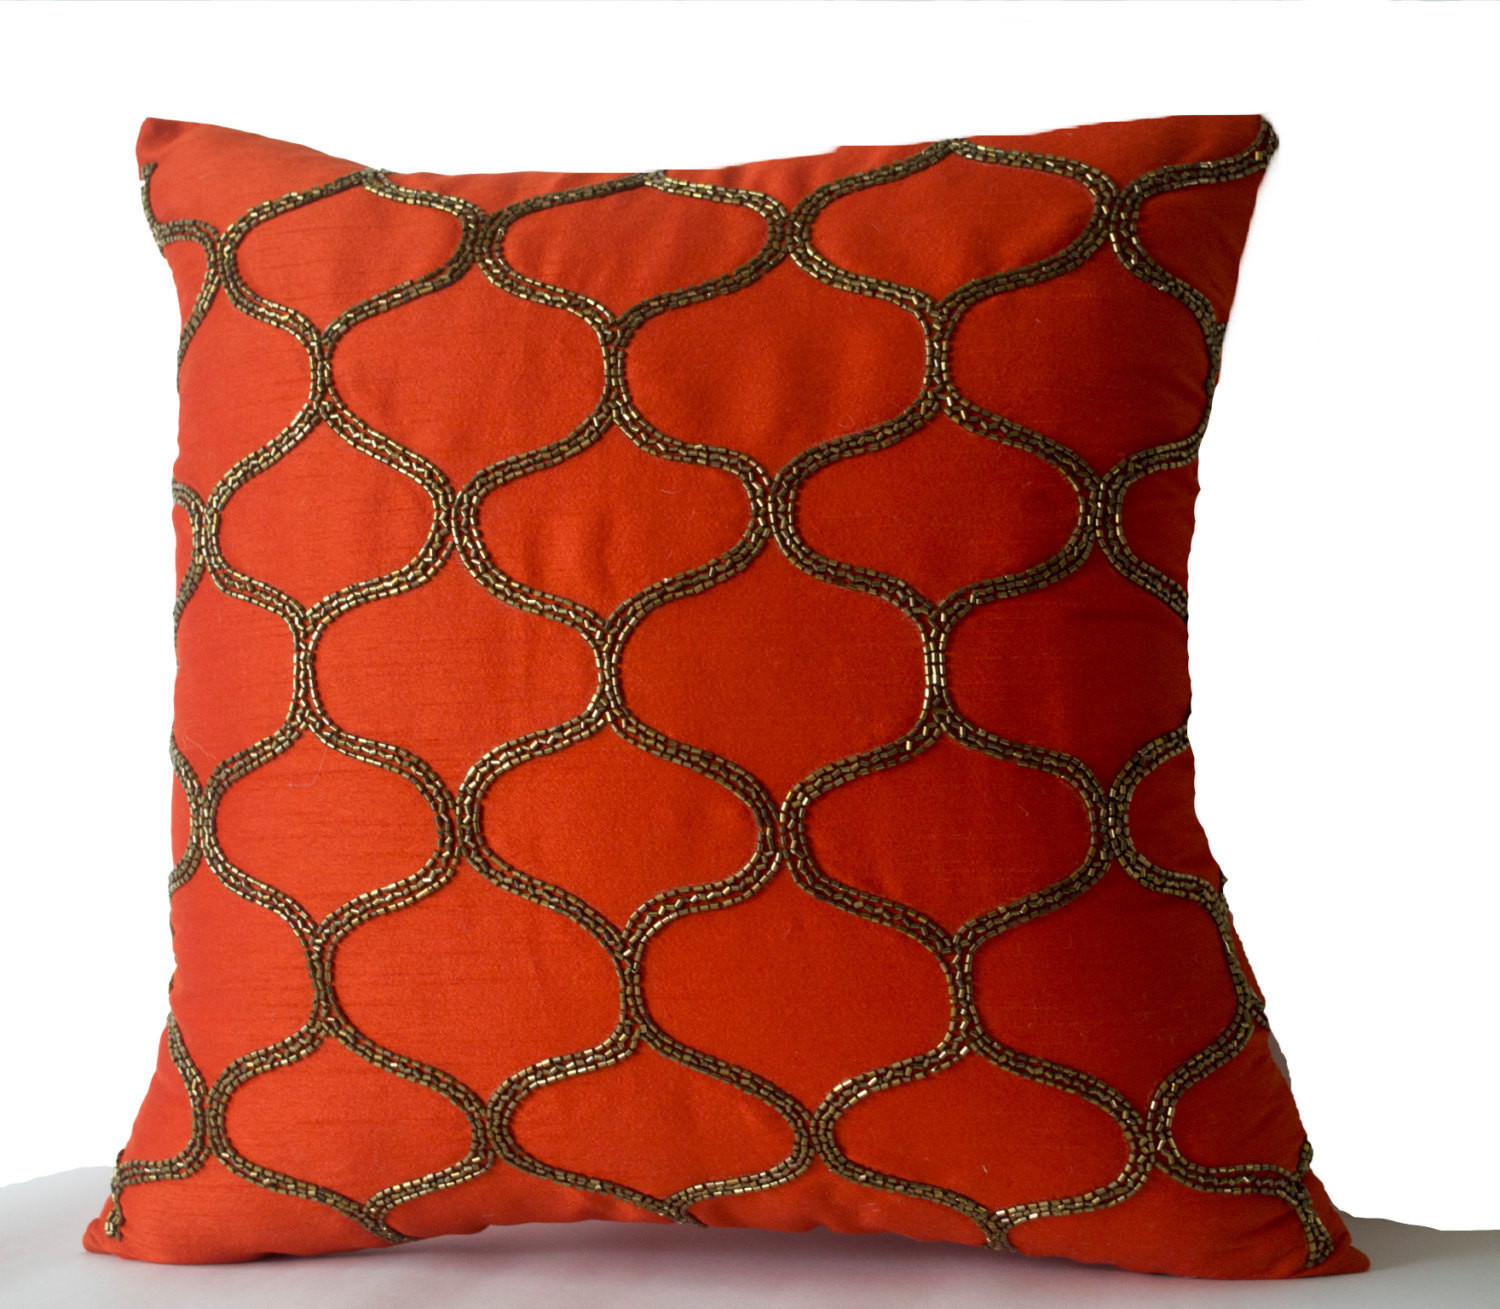 Unique orange Decorative Pillow orange Silk Pillow orange Brown Patterned Throw Of Amazing 40 Photos Patterned Throw